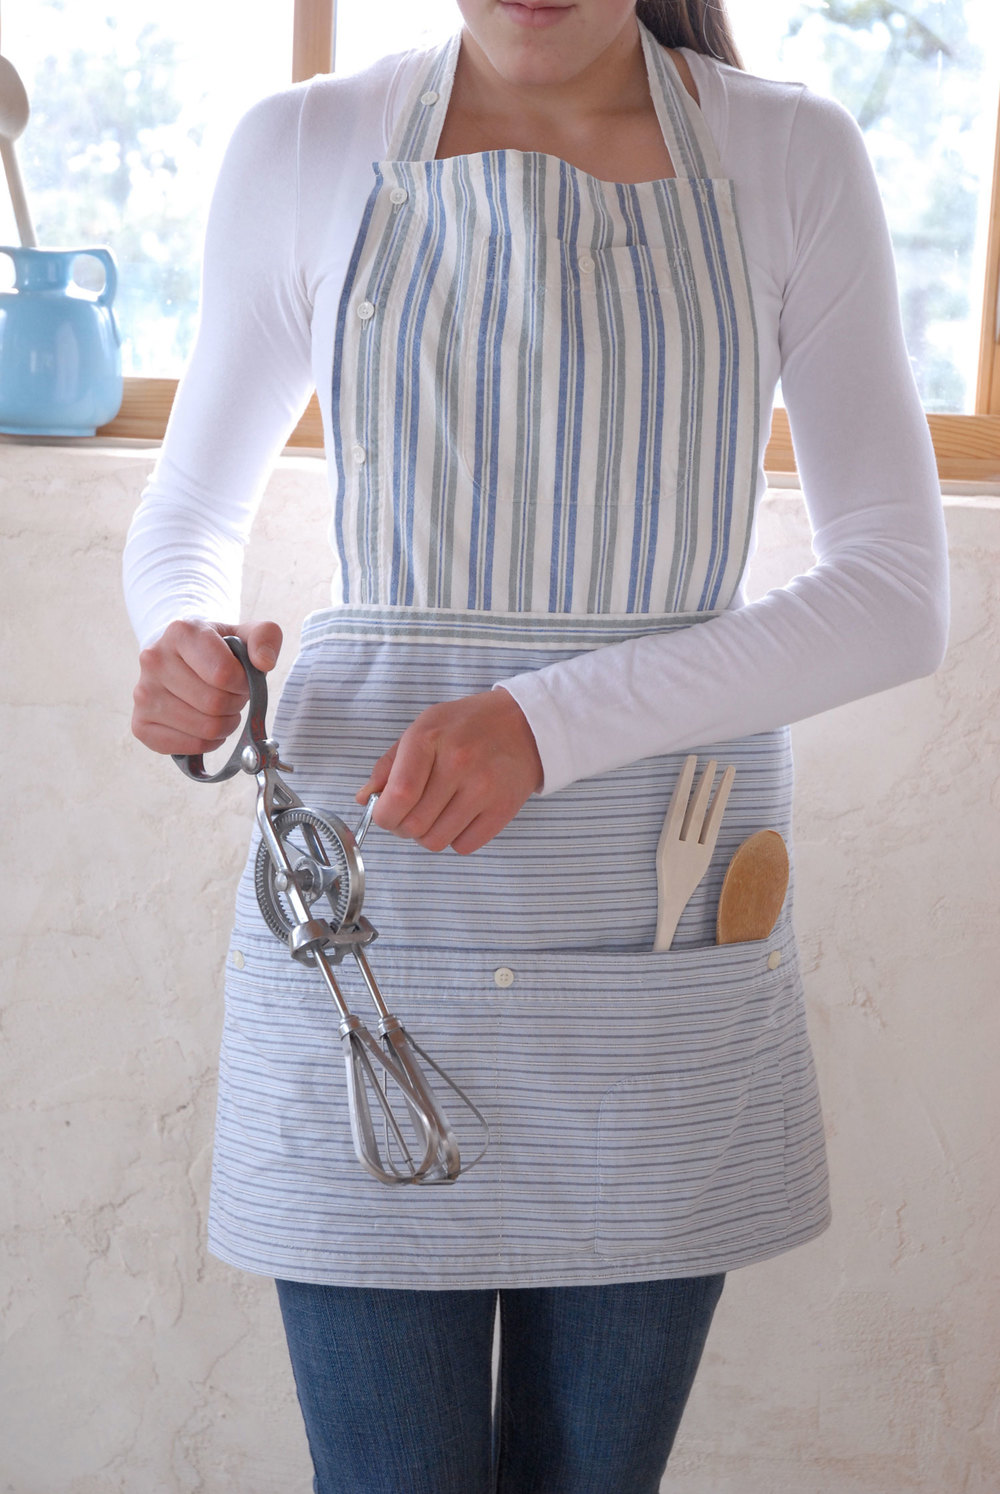 DSC_0042-excellent-full-on-cam-apron-OP.jpg